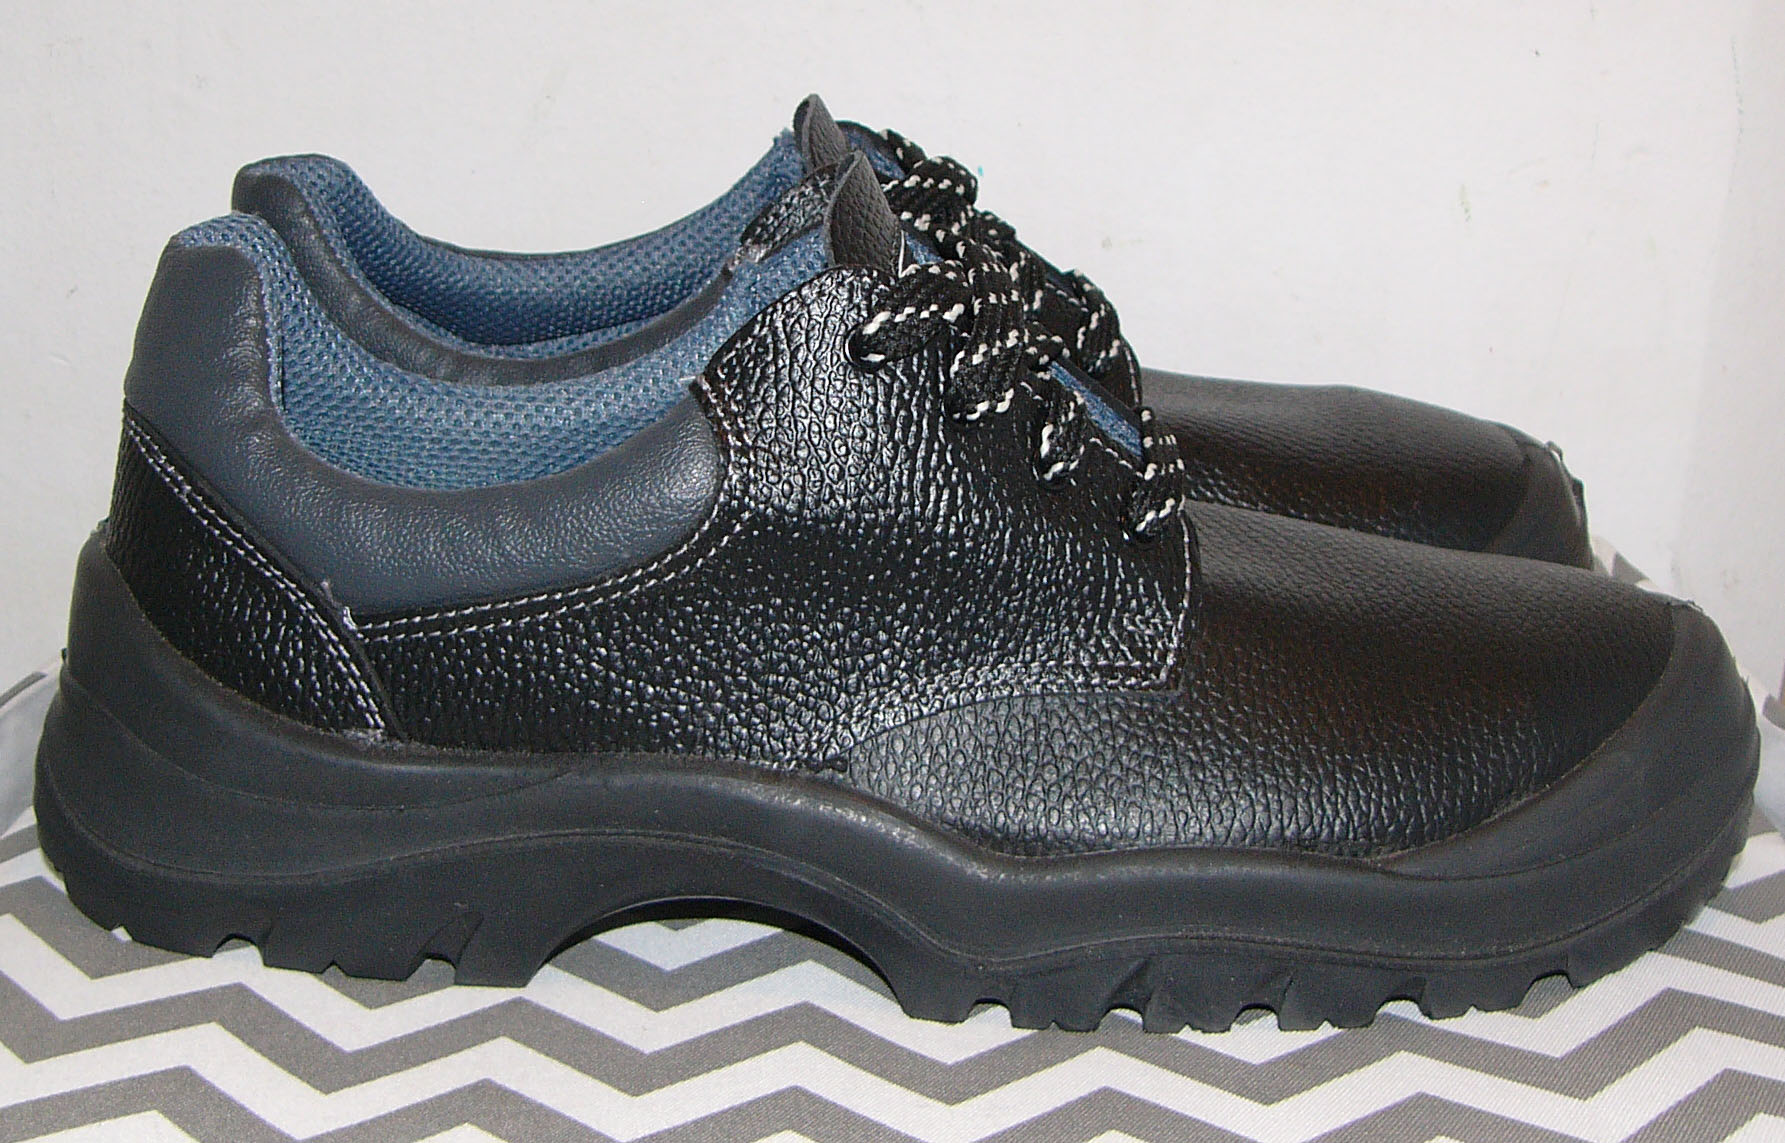 SANTOS buty robocze MADE IN FRANCE SAFETY STEEL 48